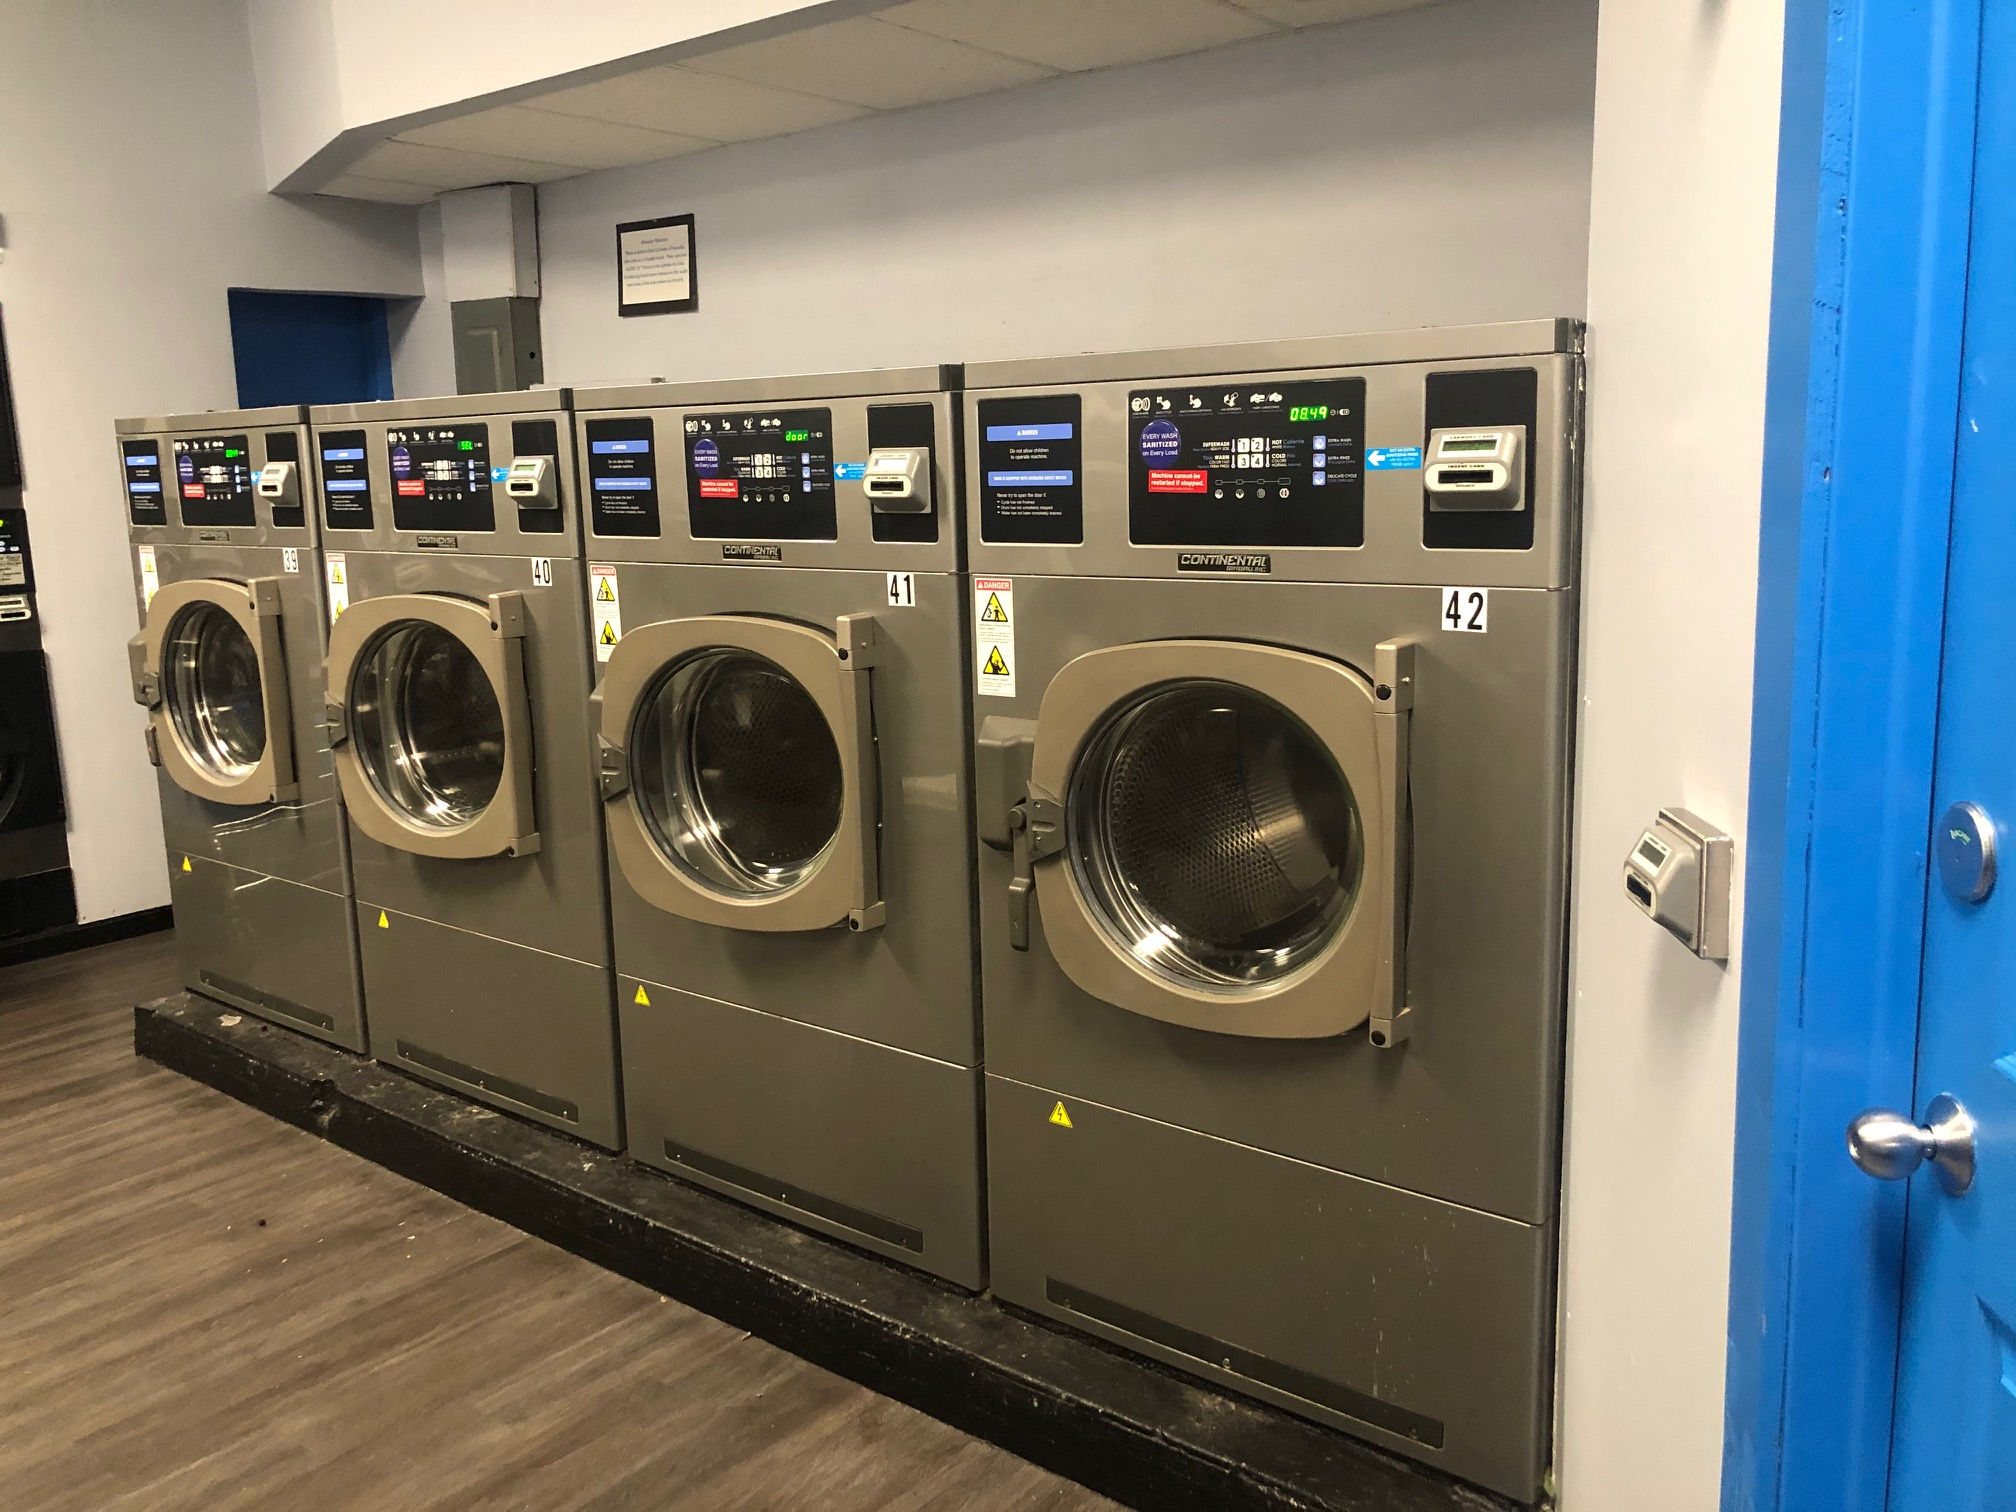 70lb. or 7-load washers at laundry time barberton